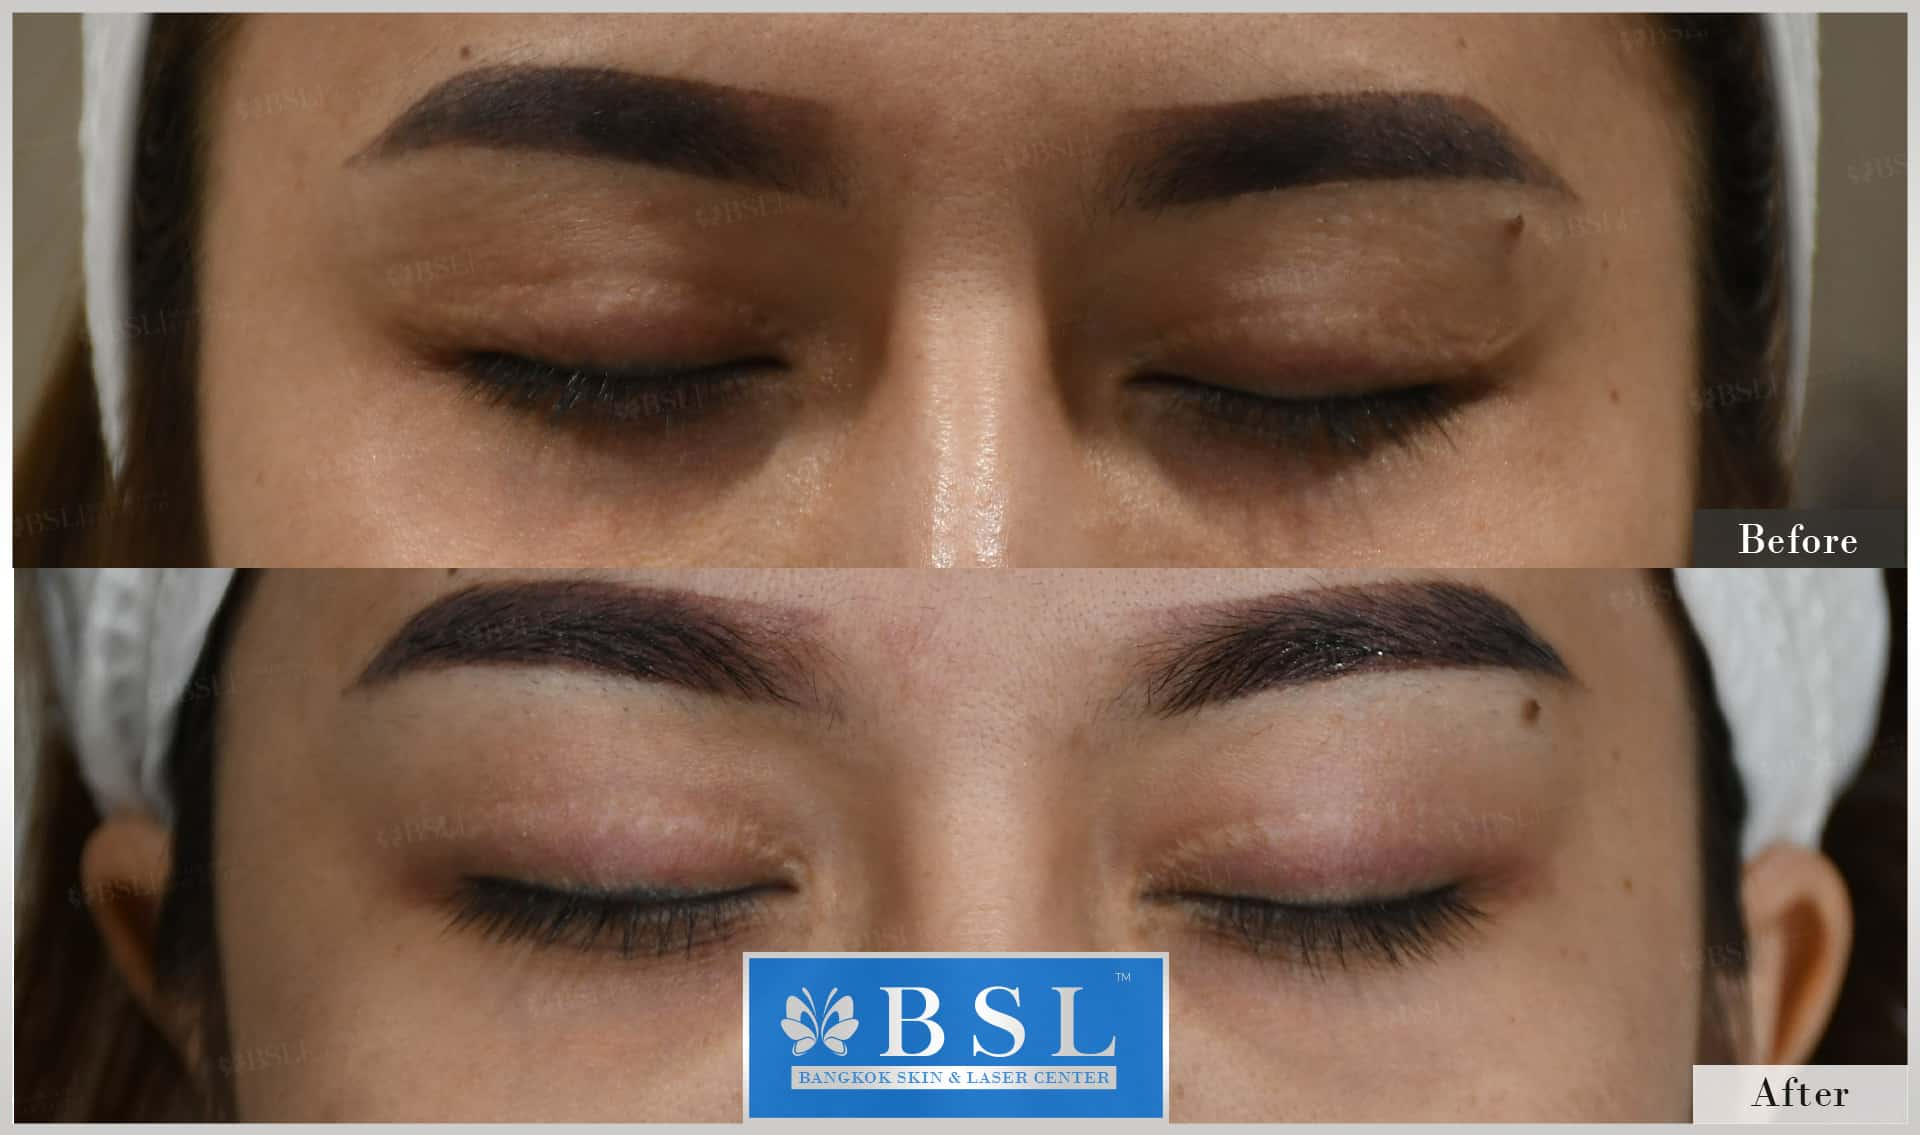 before-after-results-scar-treatment-005